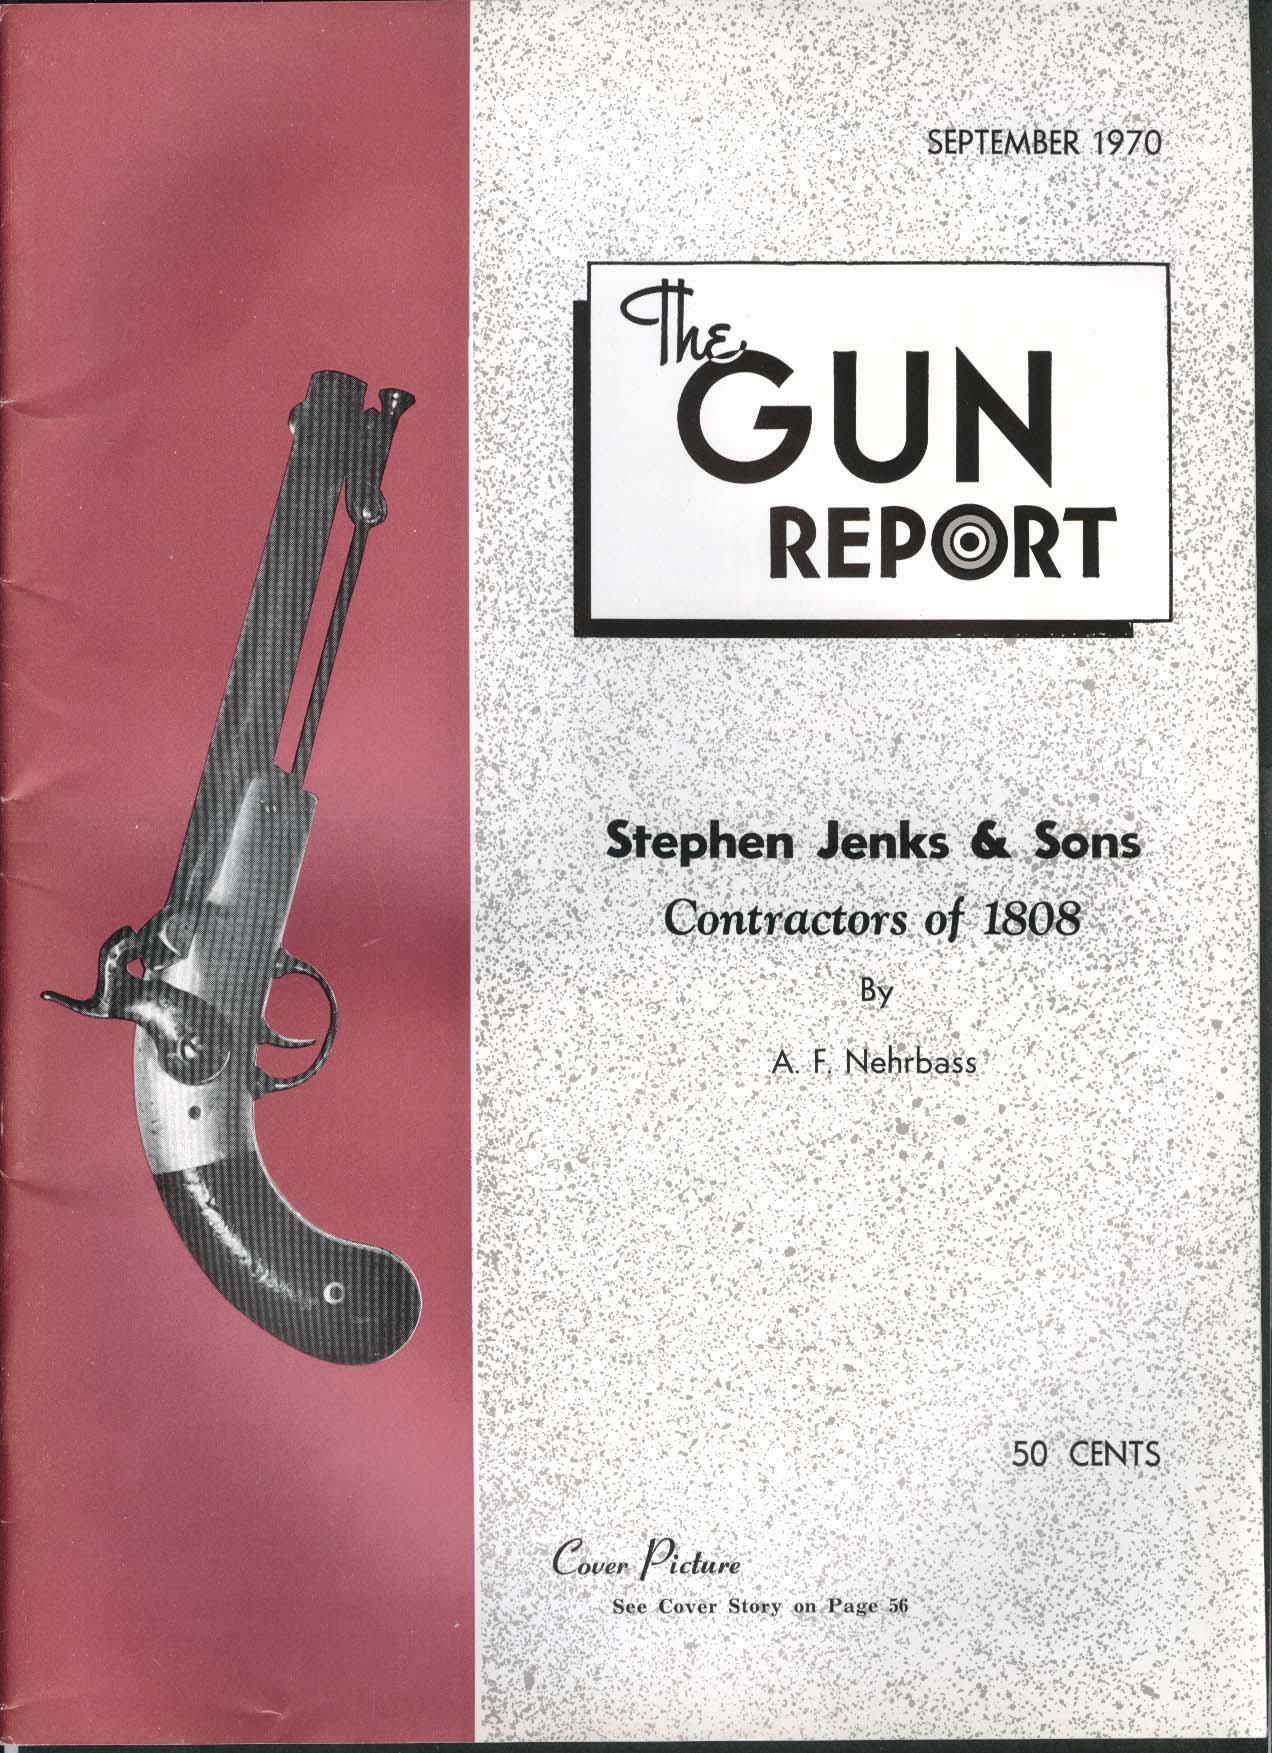 GUN REPORT Stephen Jenks & Sons Contractors 1808 9 1970